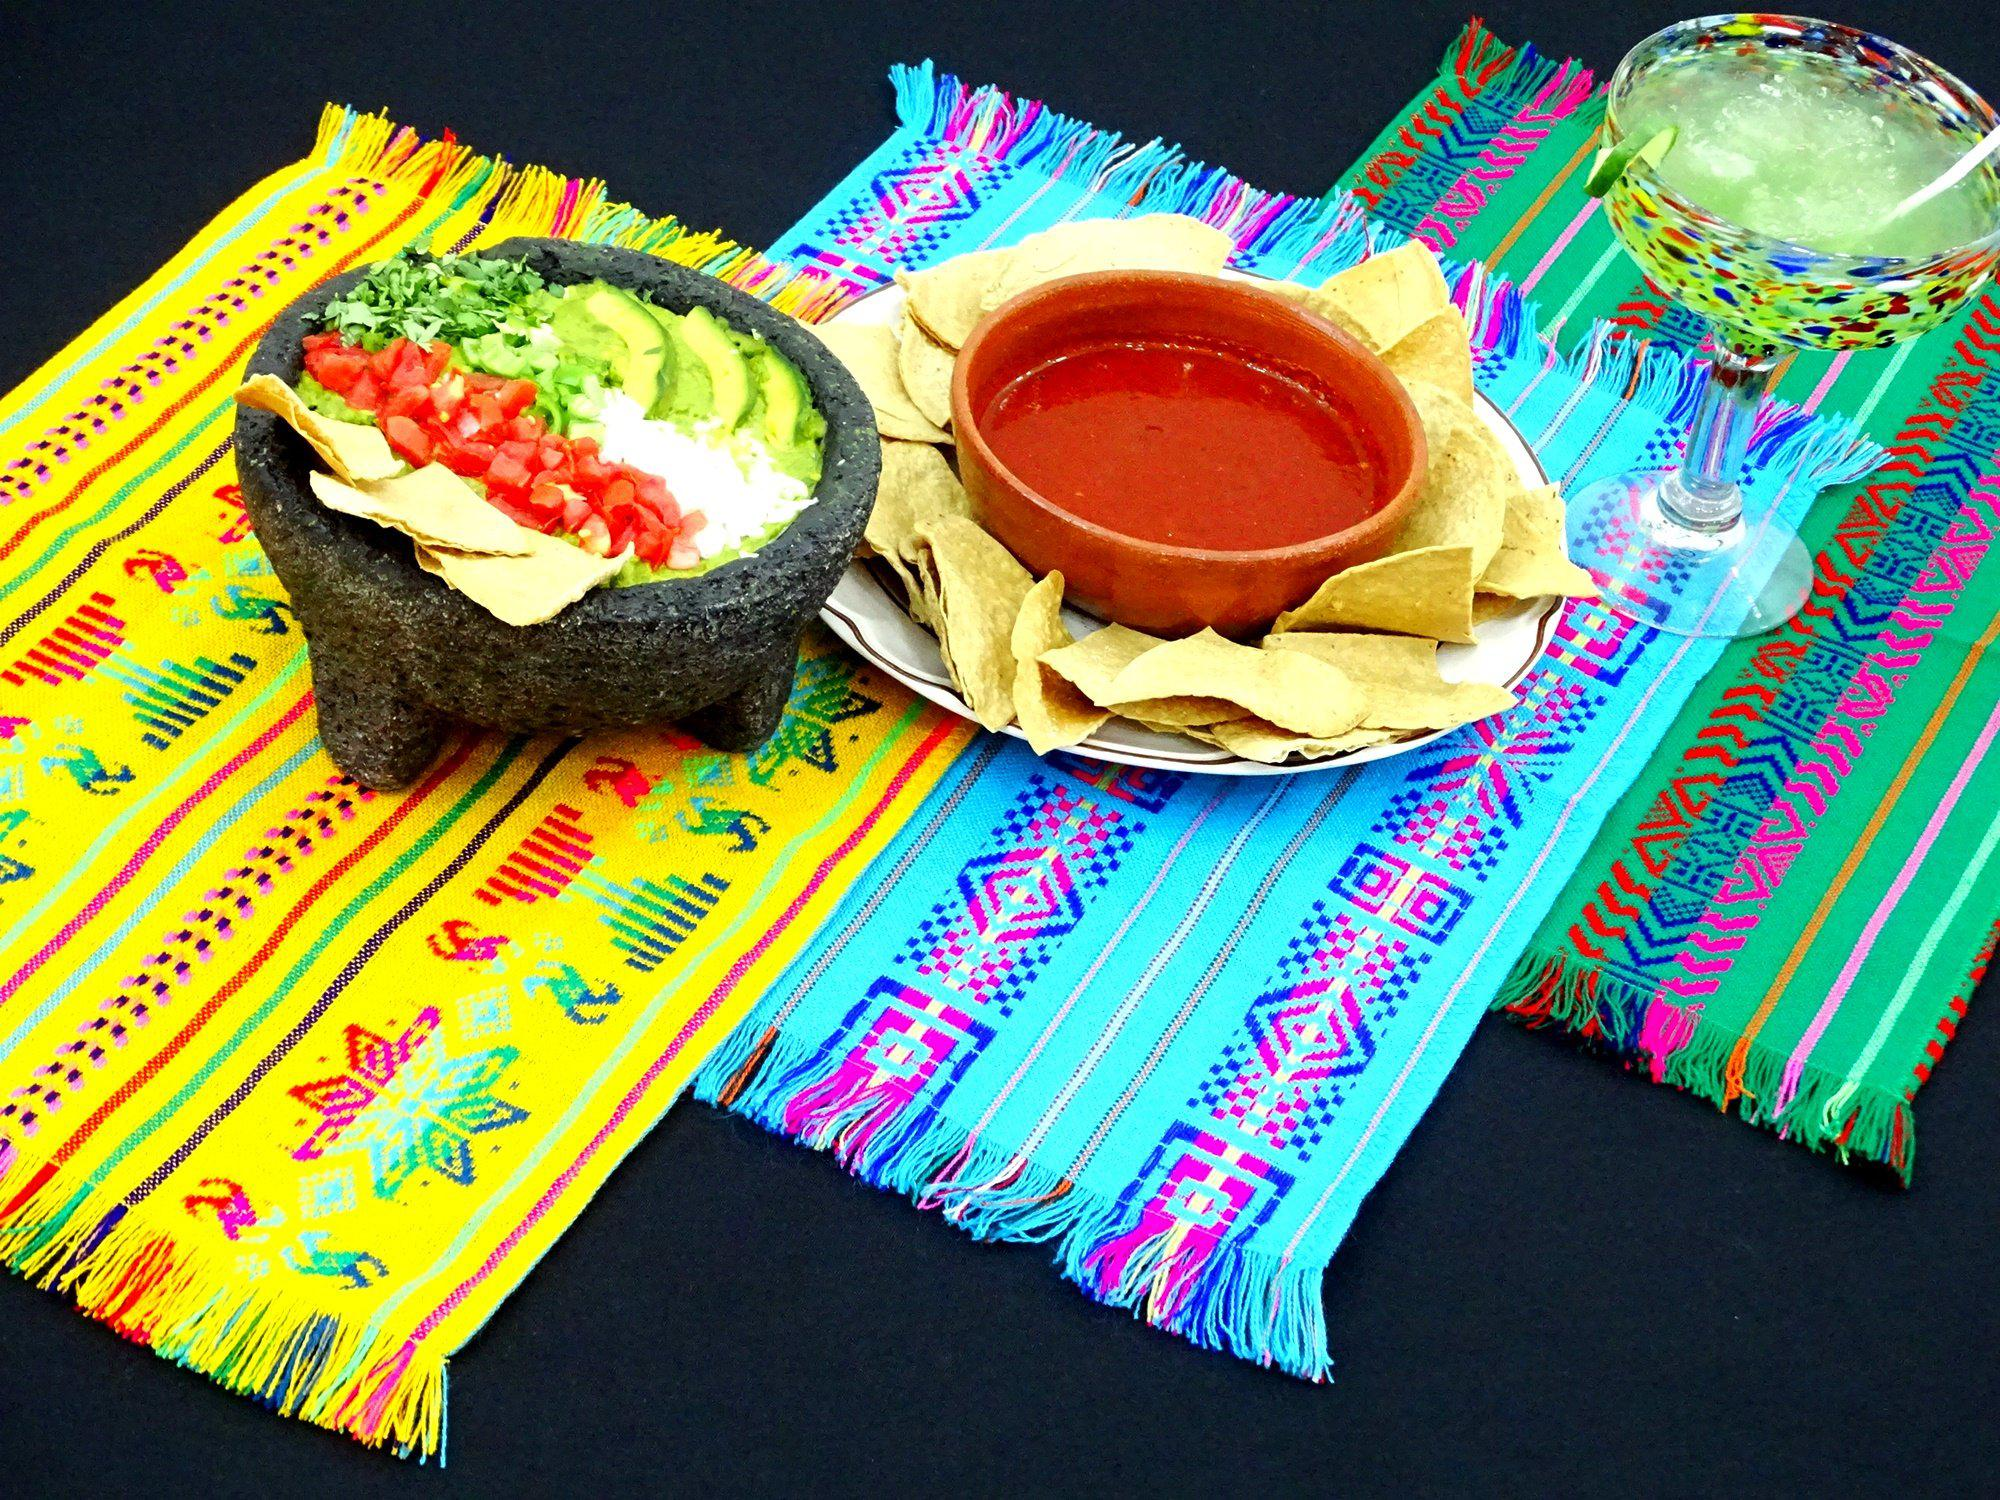 Mexican napkins, bulk set of 18, Assorted colors, Fiesta decor, woven napkins, boho chic linens, woven napkins, Nap001